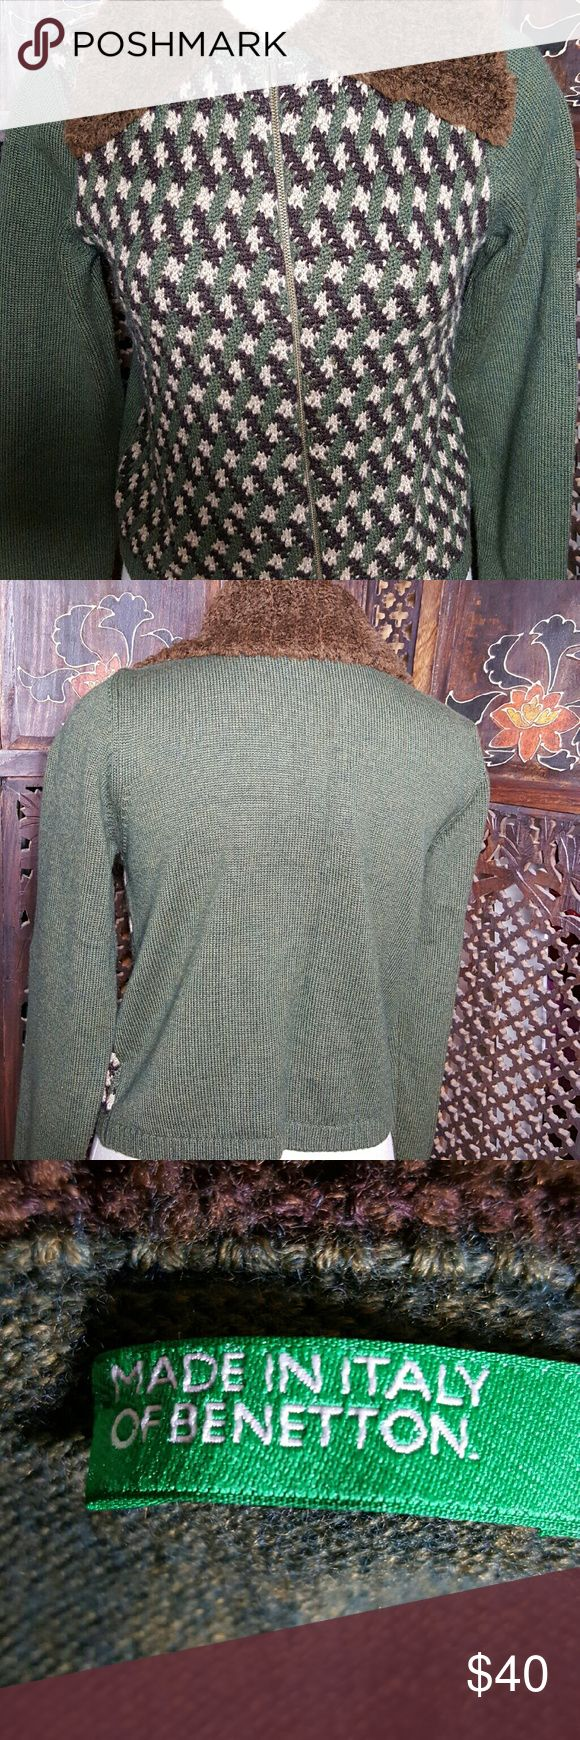 Stylish Made in Italy of Benetton zip down Sweater Olive, green, brown and Cream knit zip down Sweater with faux fur collar. BENETTON   Sweaters Cardigans